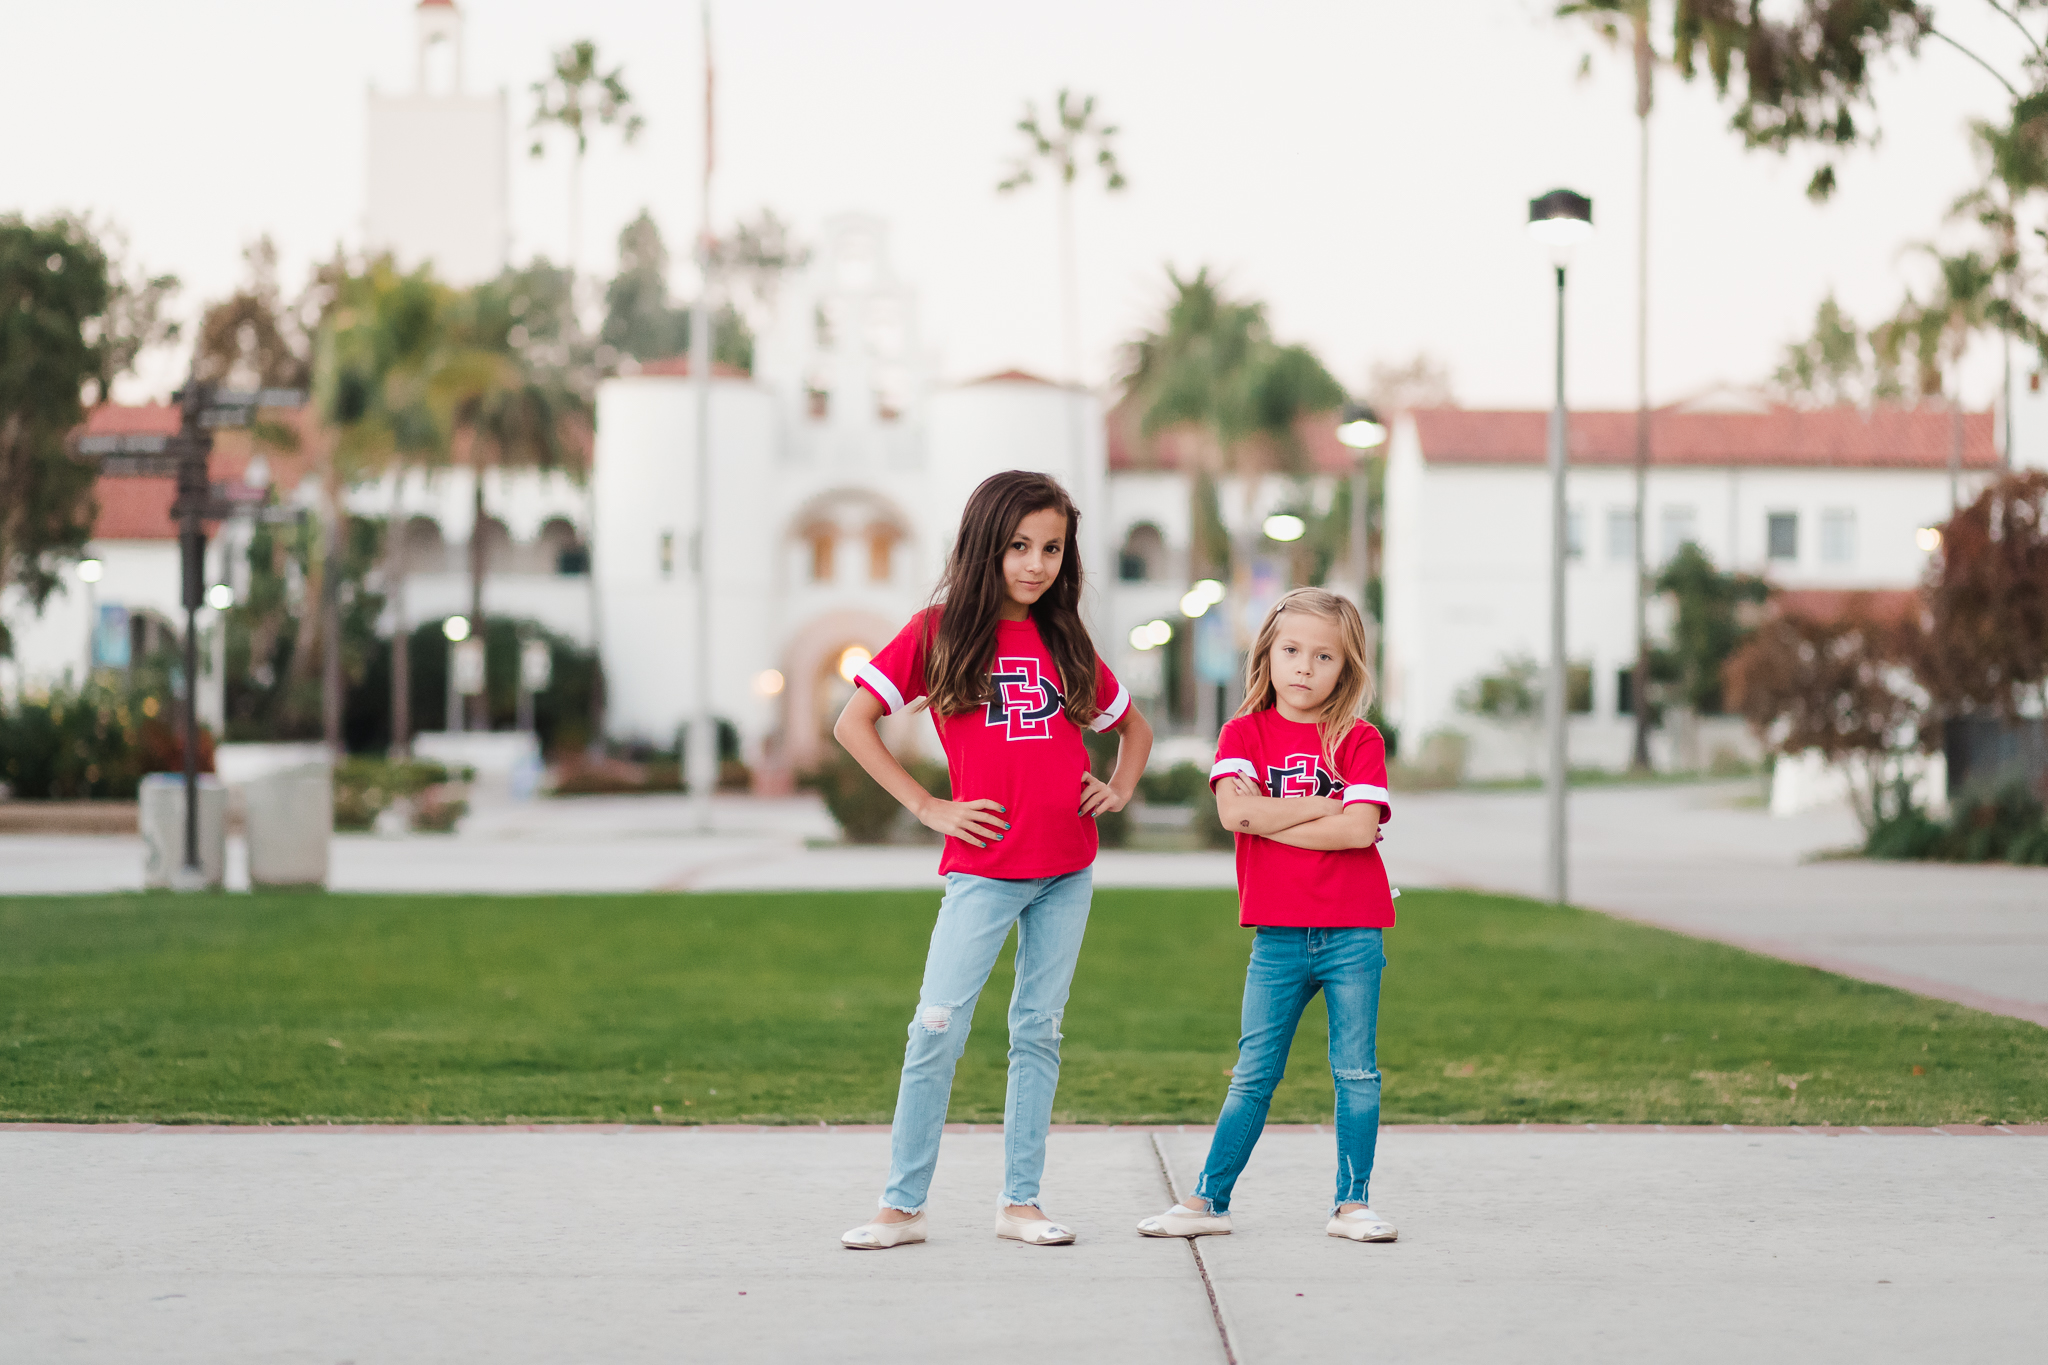 SDSU Future Aztecs